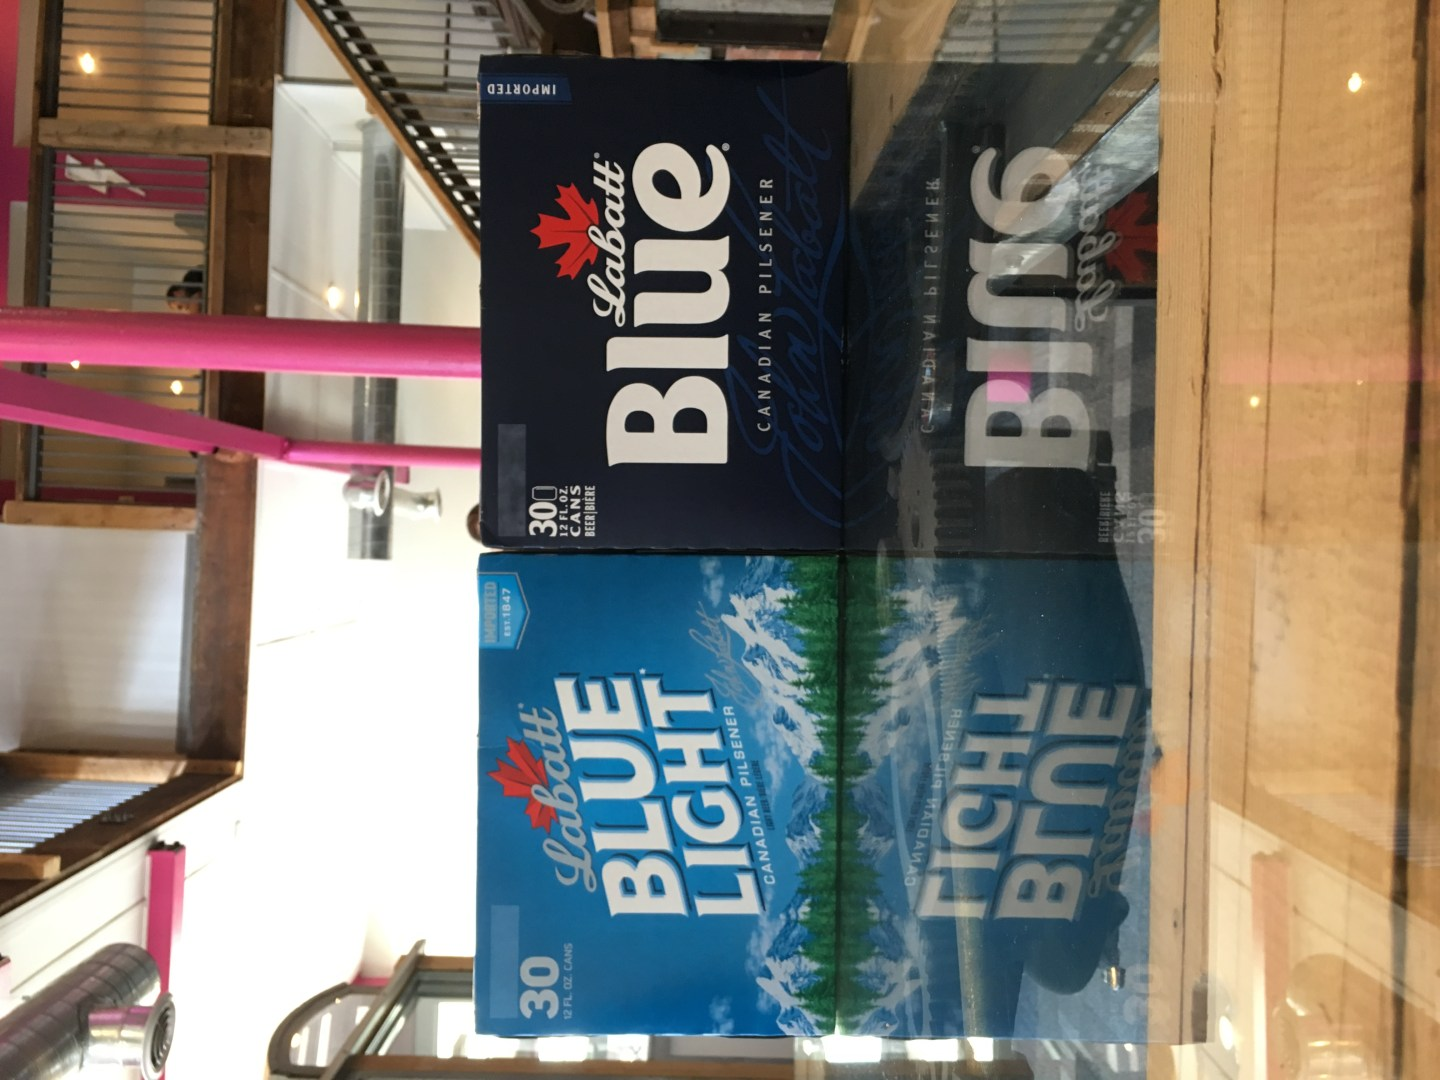 Labatt Stepped Up As 2BD's Official First Beer Sponsor…Are My Miller Lite Days Officially Over?